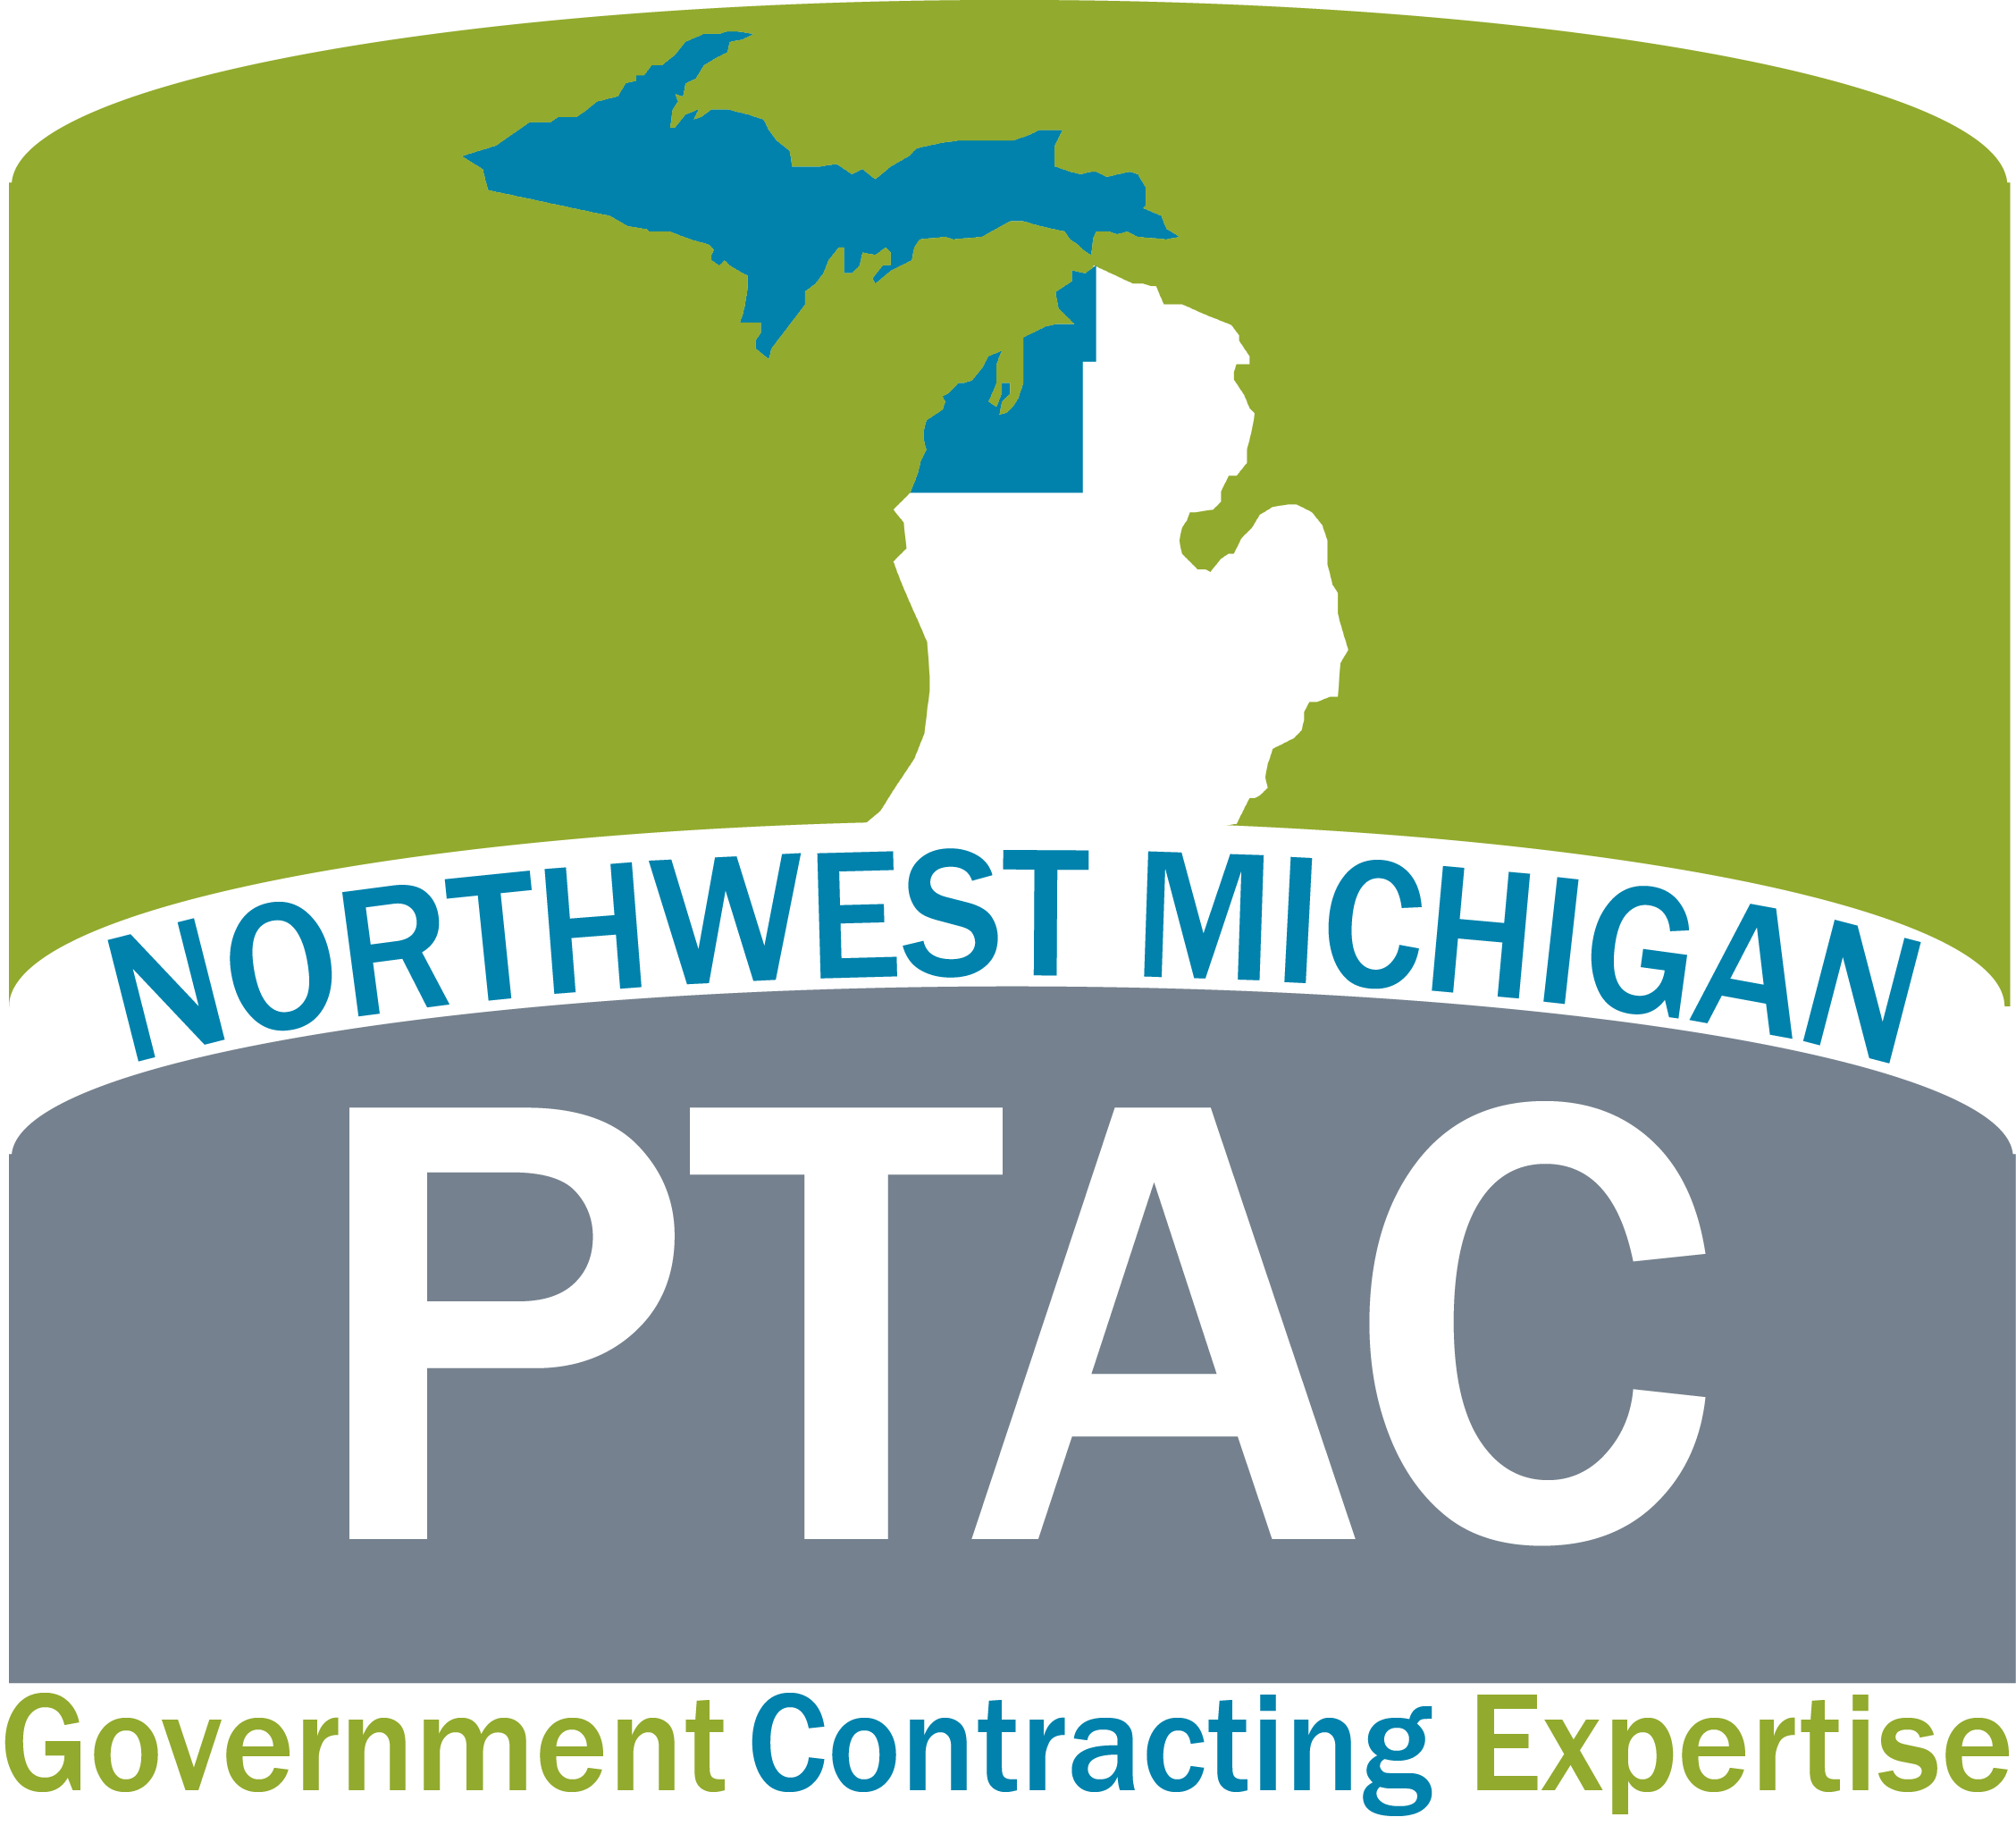 Helpful Links to Government Contracting - Northwest PTAC on unique columbus map, defense supply center columbus map, sterling heights mi map, ohio state university columbus map, columbus area map, warren michigan map, downtown columbus map,